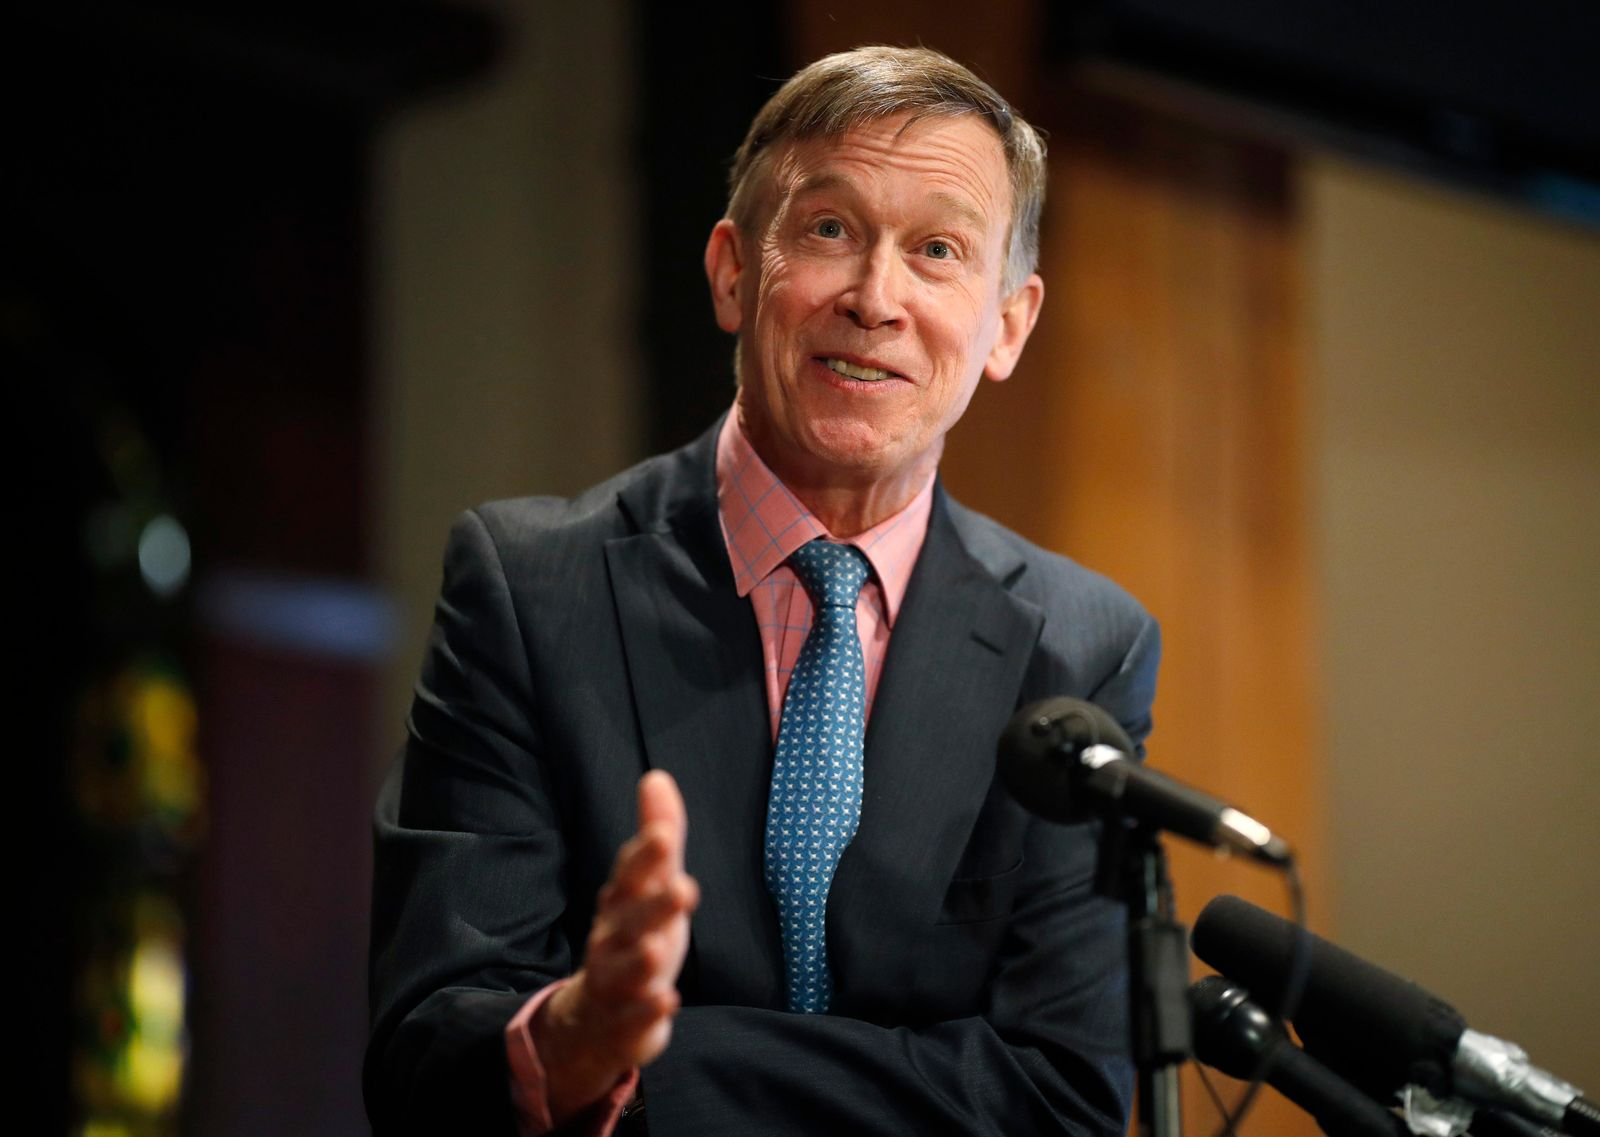 Former Colorado Gov. John Hickenlooper responds to questions during a news conference in the brewpub that he established before his foray into politics Wednesday, March 6, 2019, in lower downtown Denver. (AP Photo/David Zalubowski)